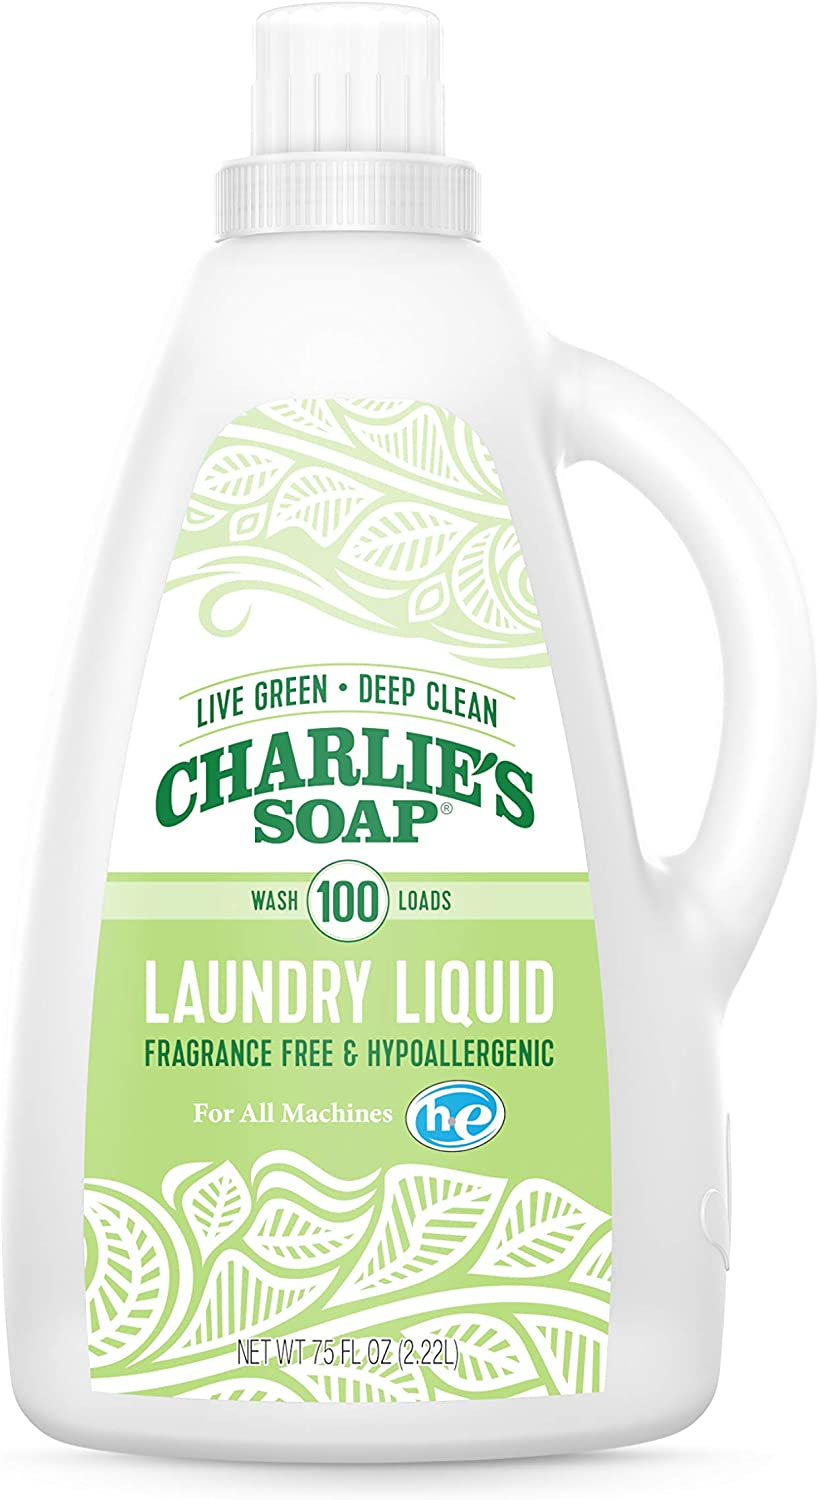 Charlie's Soap Laundry Liquid (100 Loads, 1 Pack) Natural Deep Cleaning Hypoallergenic Laundry Detergent – Safe, Effective and Non-Toxic